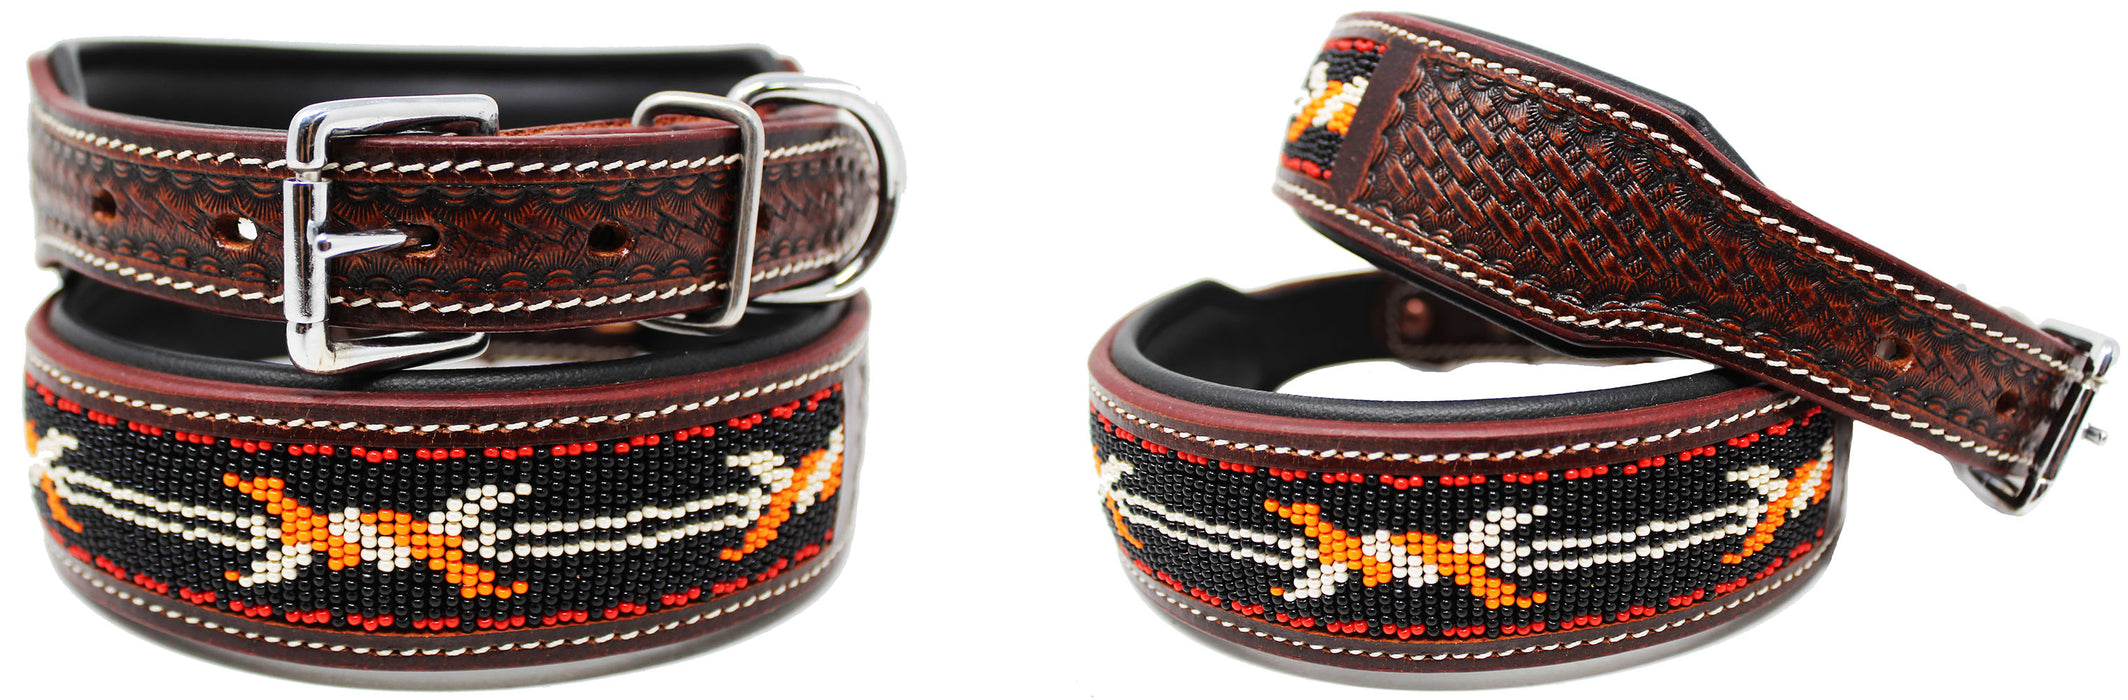 Dog Puppy Collar Genuine Cow Leather Padded Canine  60118